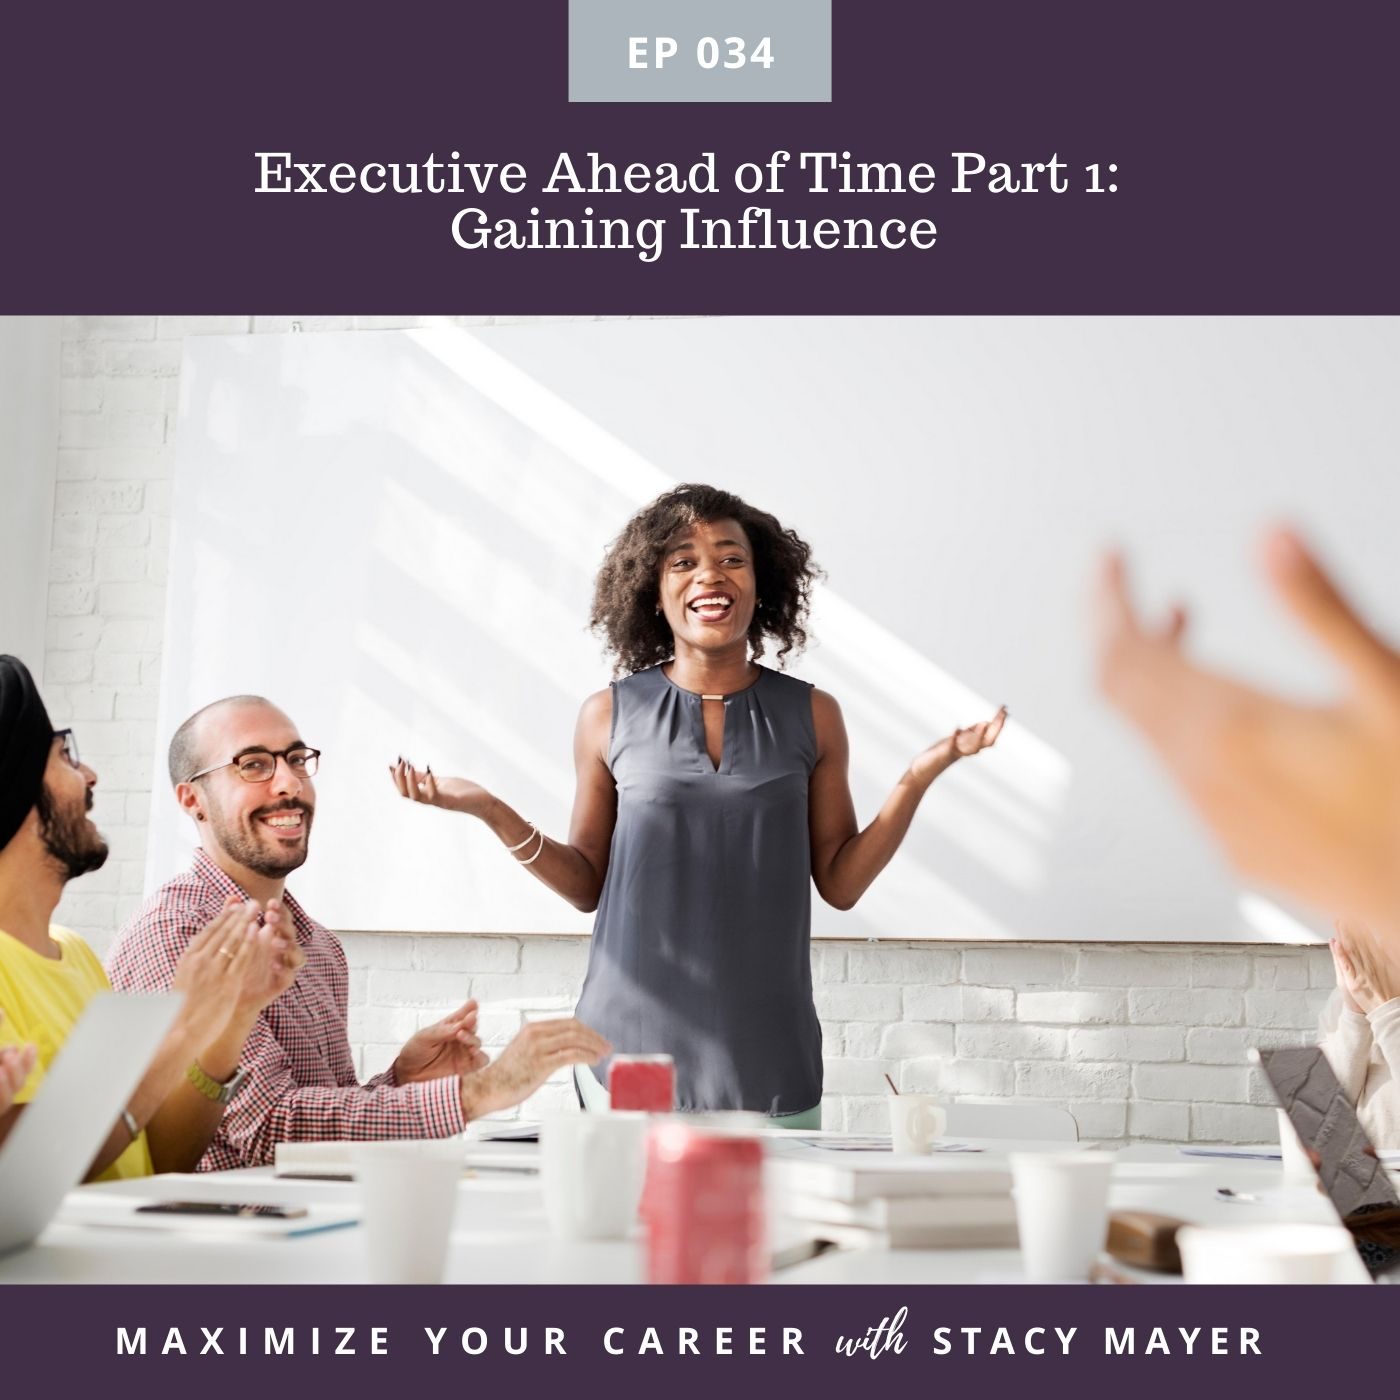 Episode Image - Executive Ahead of Time Part 1 - Gaining Influence